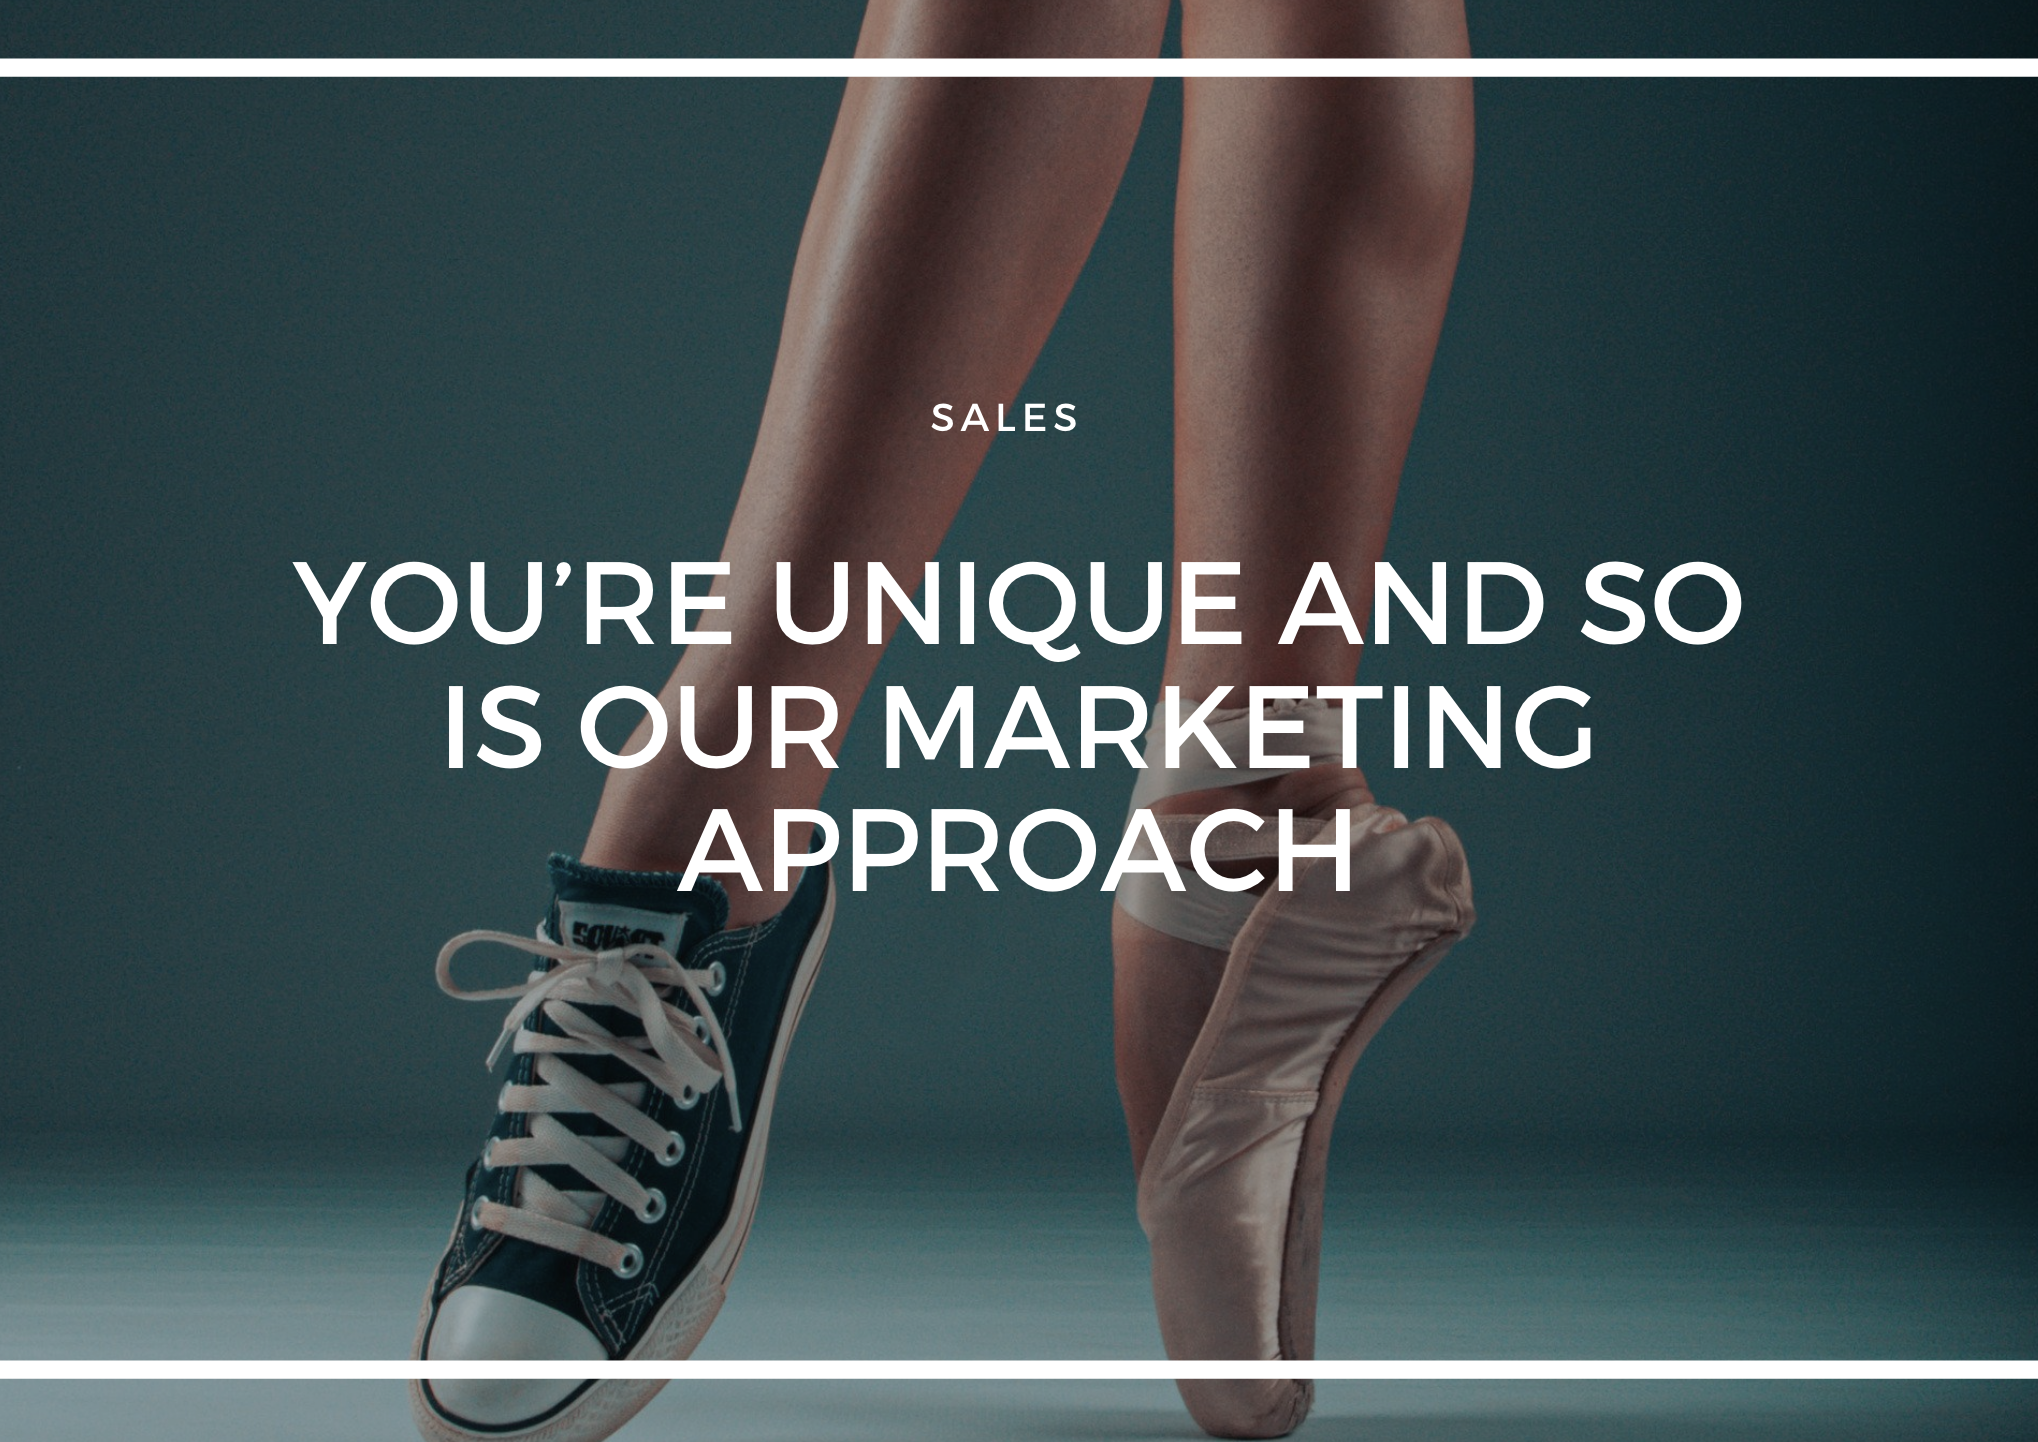 YOU'RE UNIQUE & SO IS OUR MARKETING APPROACH